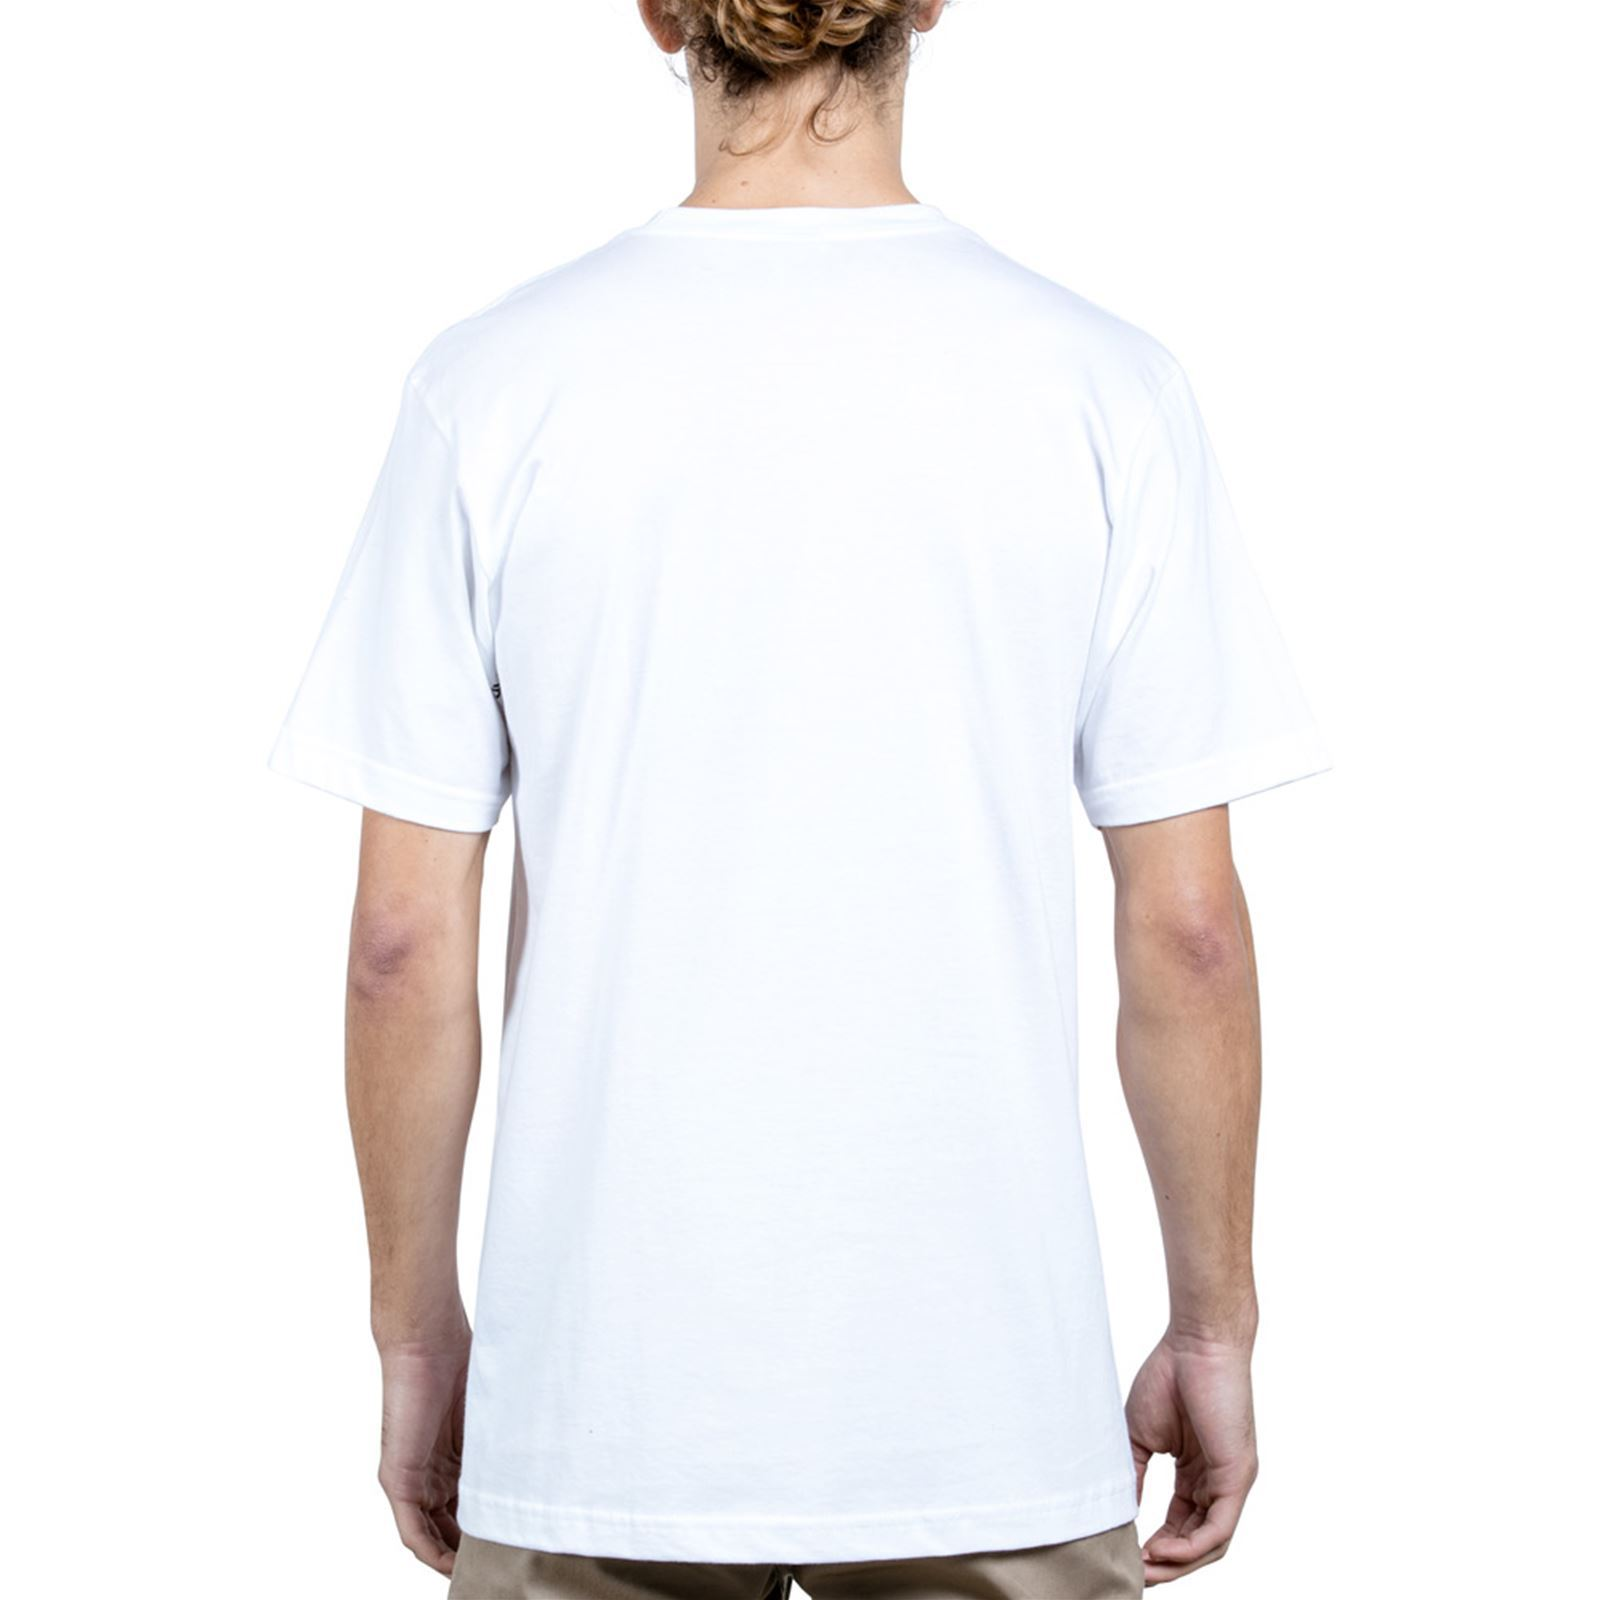 SsT Courtes Bsc V Blanc Volcom shirt Homme Manches Wiggle CBedox